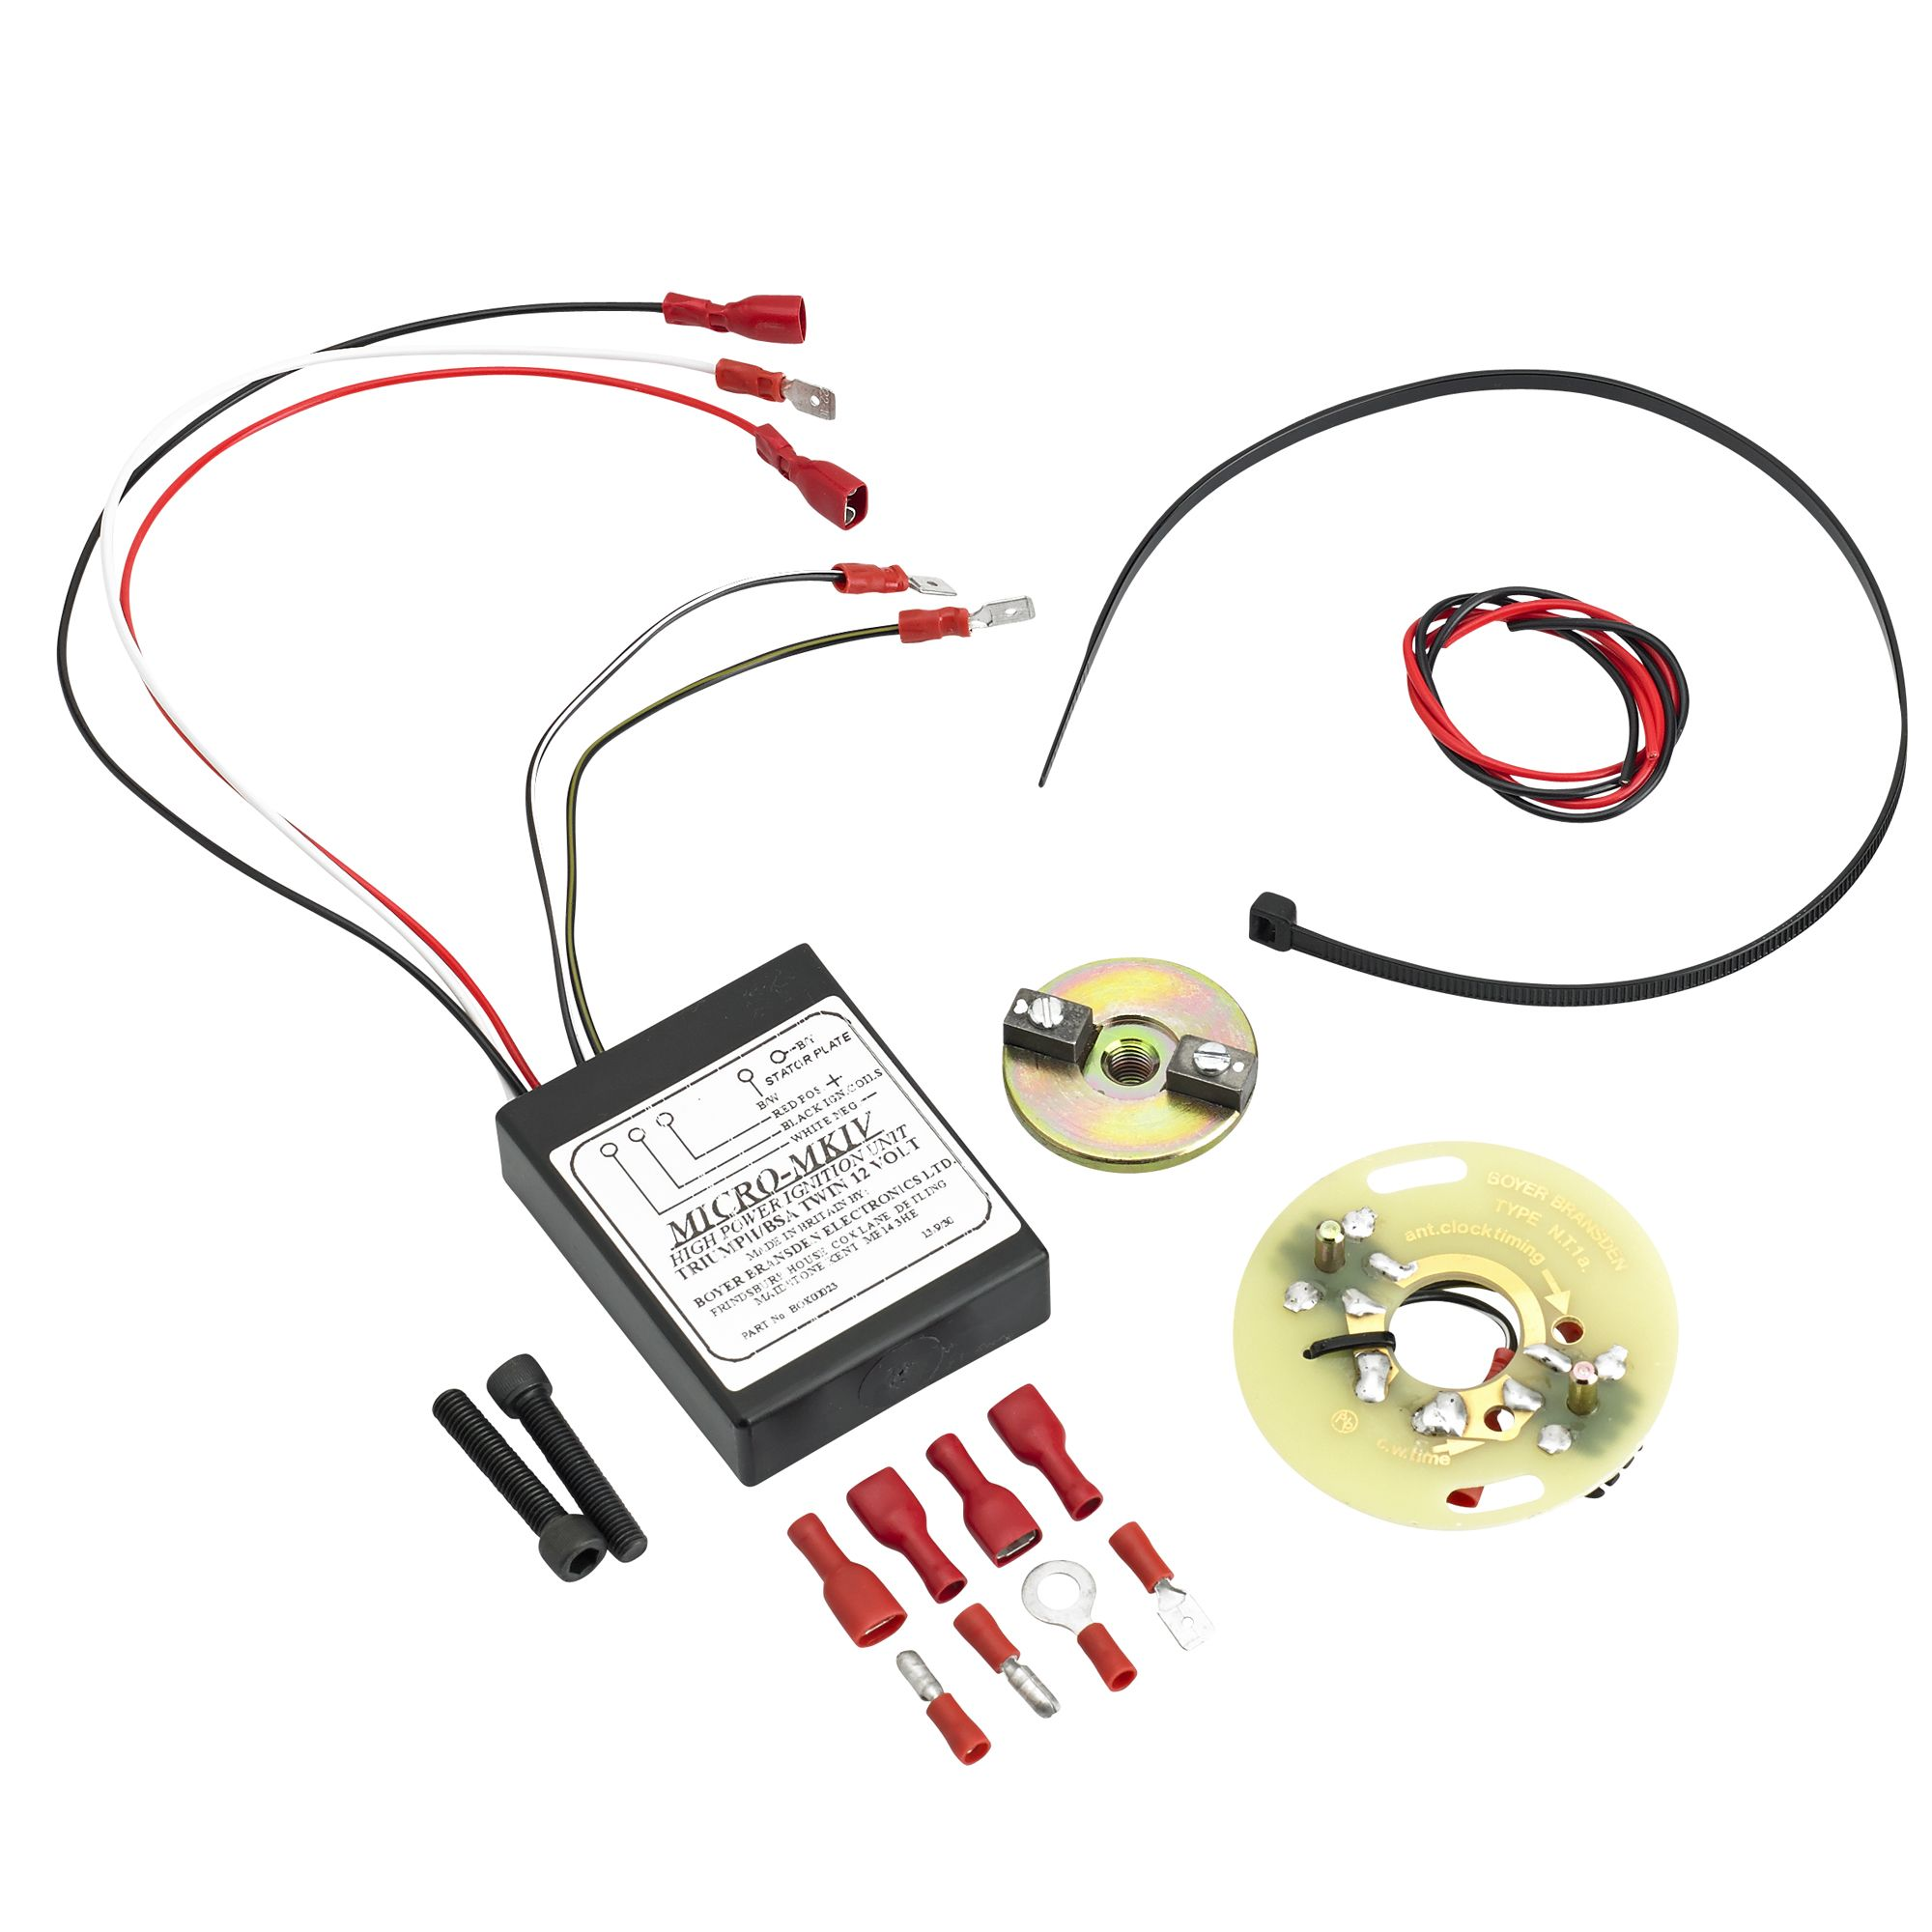 hight resolution of boyer bransden electronic ignition for triumph and bsa motorcycles 500 650 750 c c kit 00052